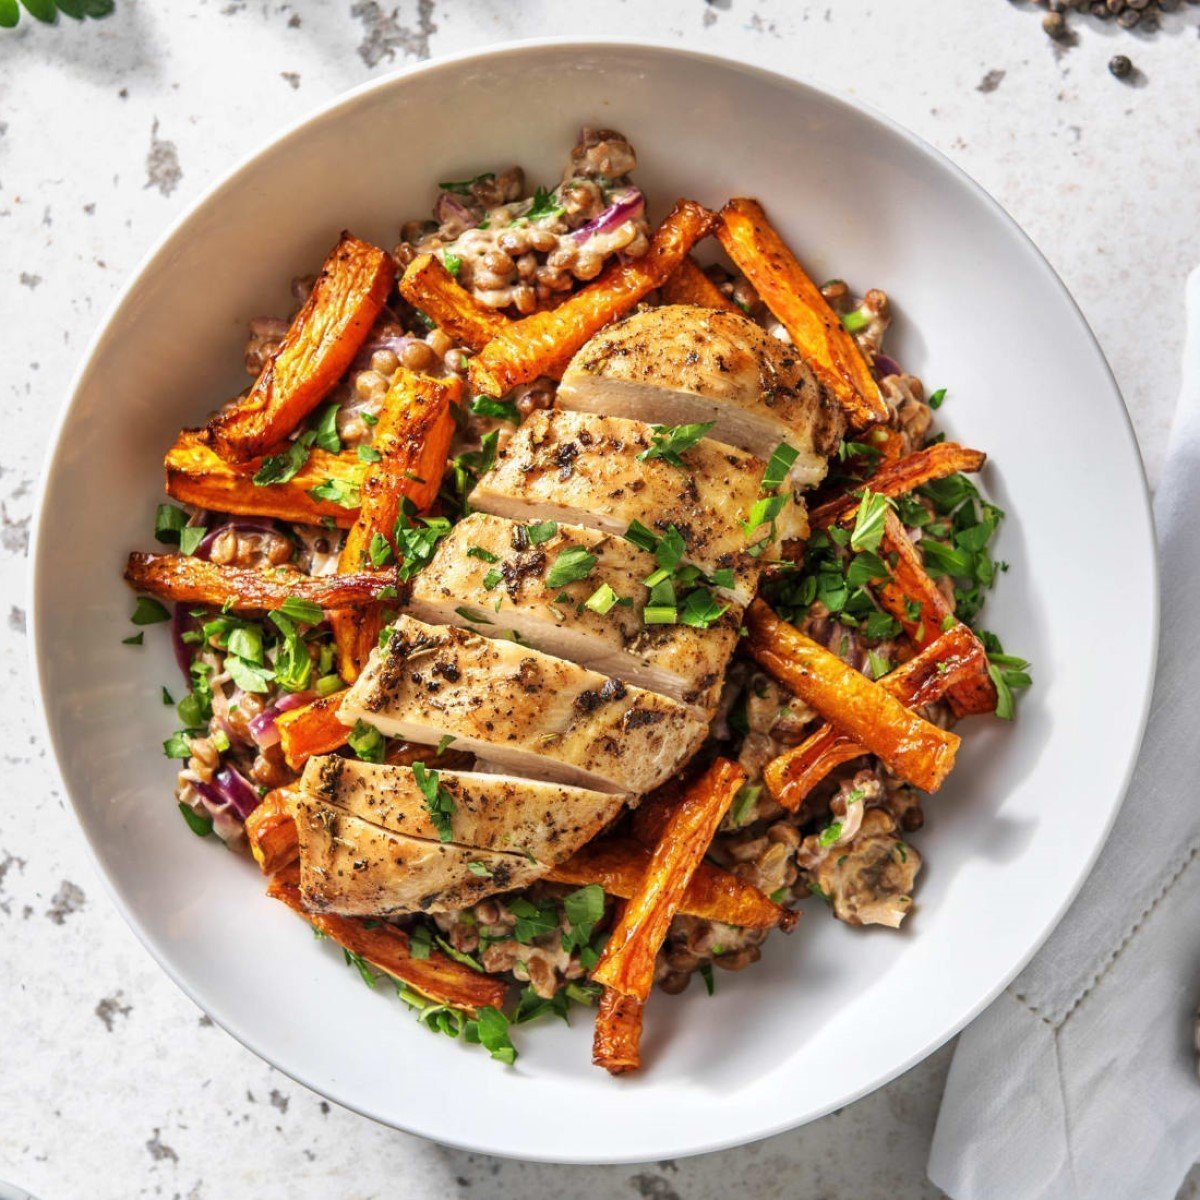 Parisienne Spiced Chicken with Mustard Lentils and Roasted Carrots Recipe